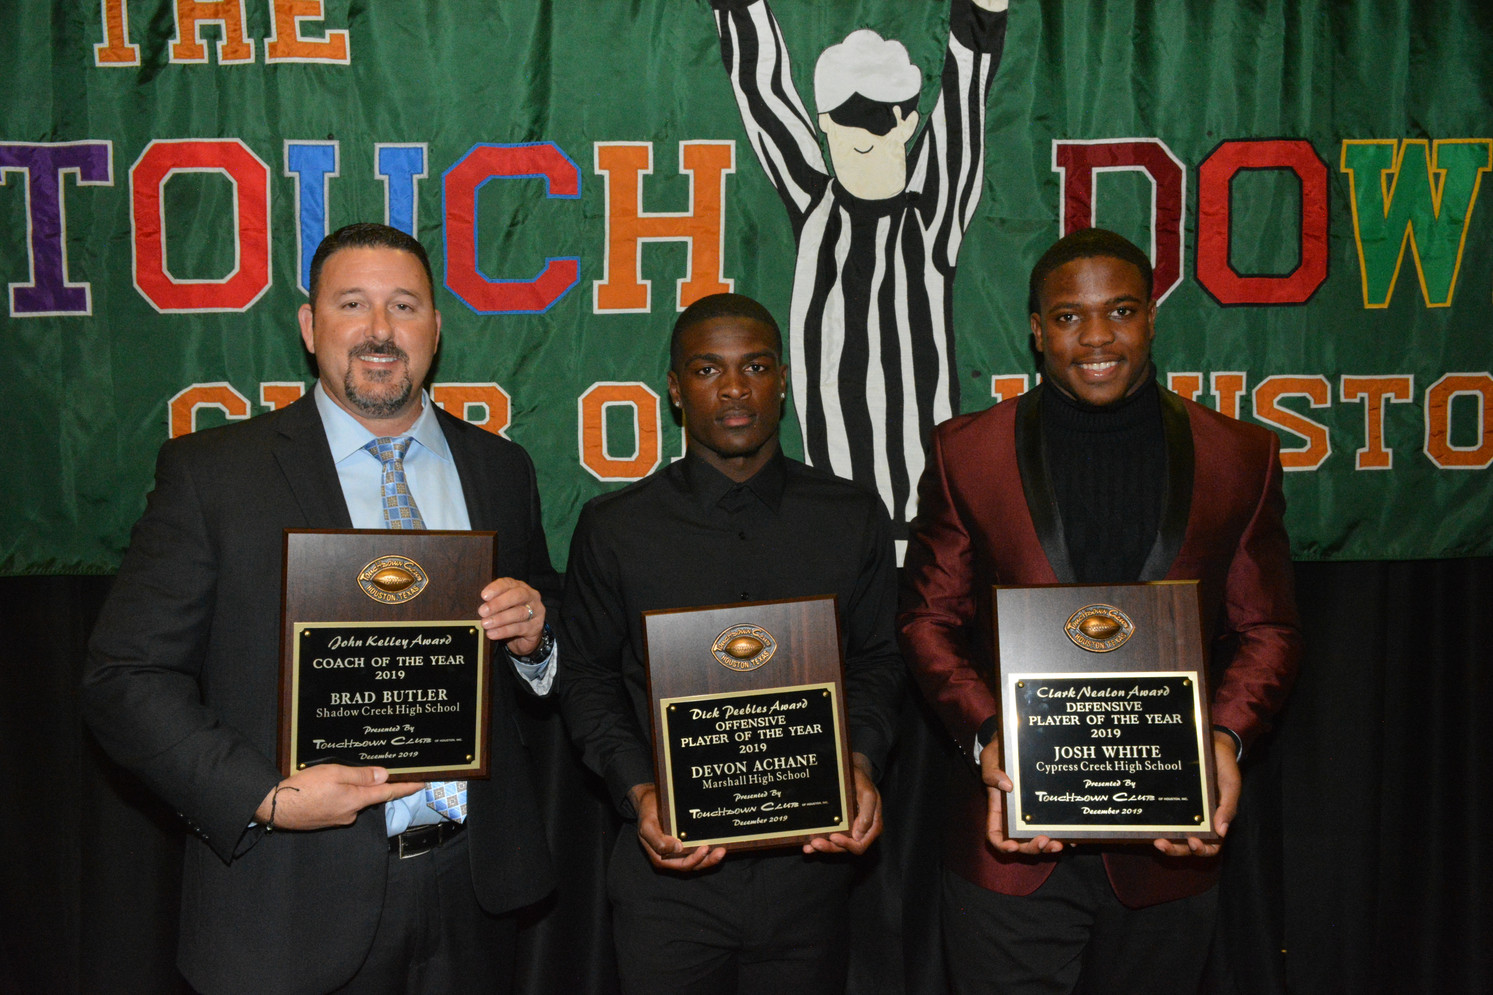 Winners from the UIL High School Awards Dinner in 2019 are, from left, Coach of the Year Brad Butler of Shadow Creek High School; Offensive Player of the Year Devon Archane of Thurgood Marshall High School; and Defensive Player of the Year Josh White of Cypress Creek High School.